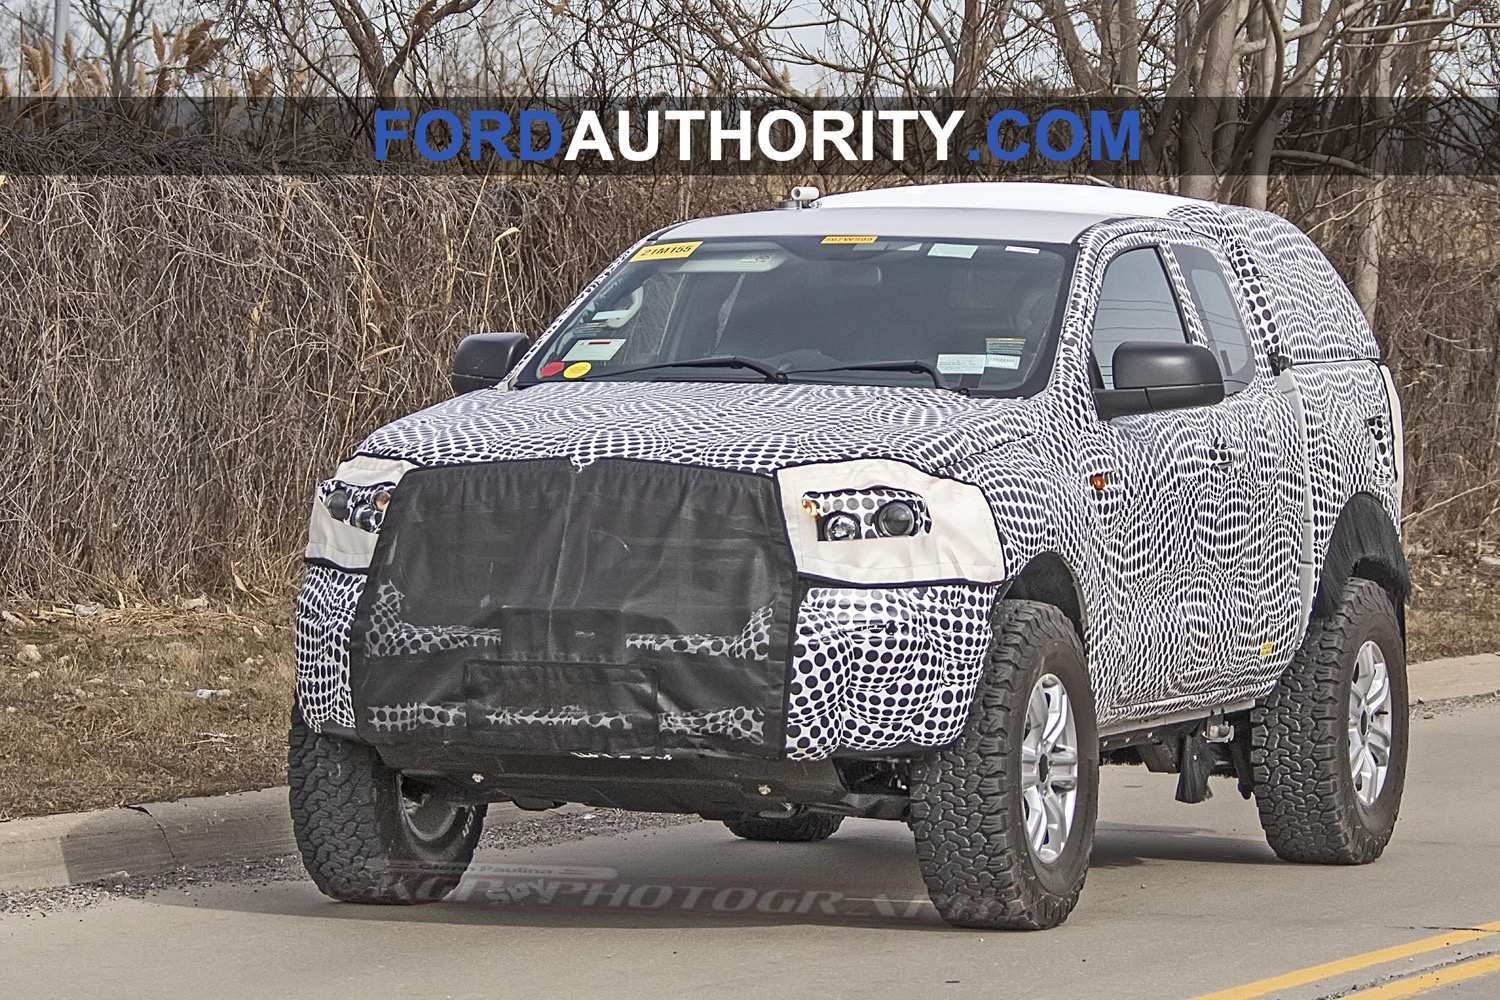 72 Gallery of Release Date Of 2020 Ford Bronco Configurations with Release Date Of 2020 Ford Bronco